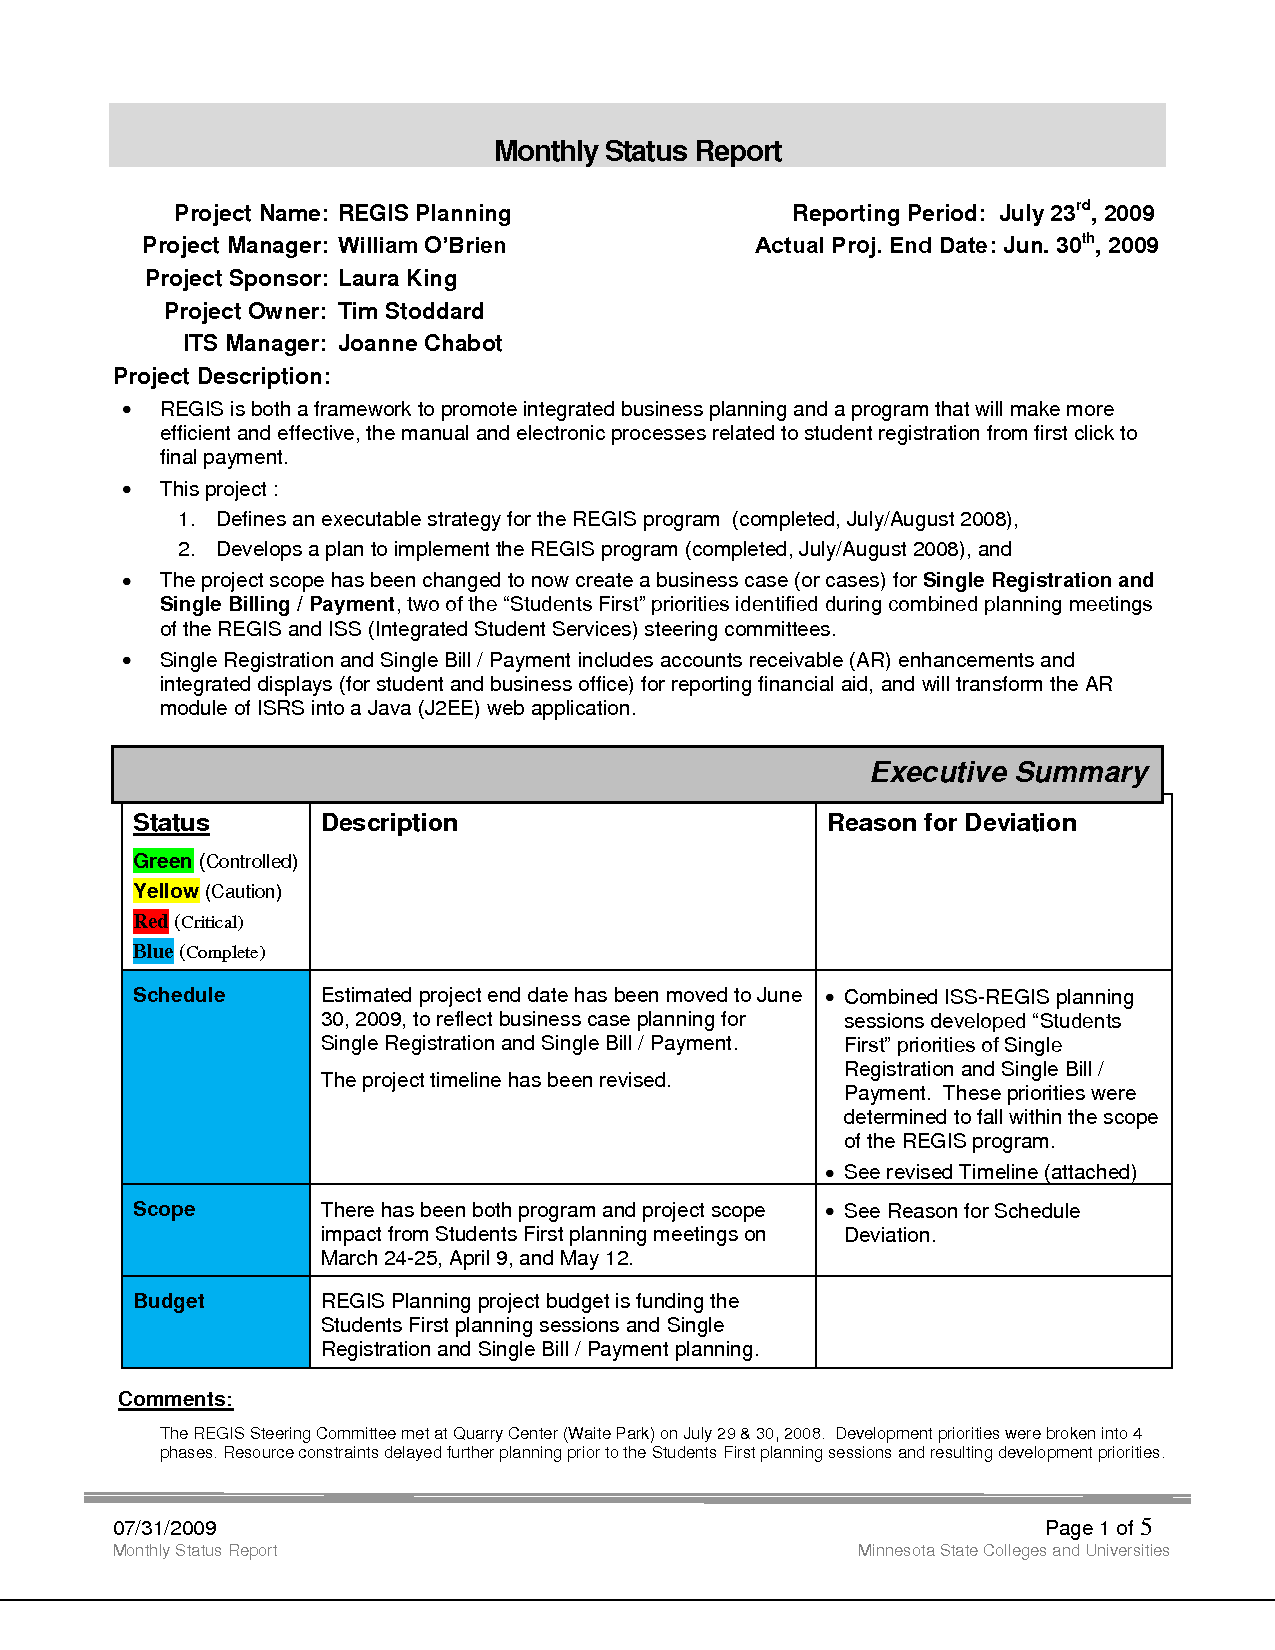 Example Of Project Status Report and Monthly Project Status Report Template Designed by Ohlhqdy0